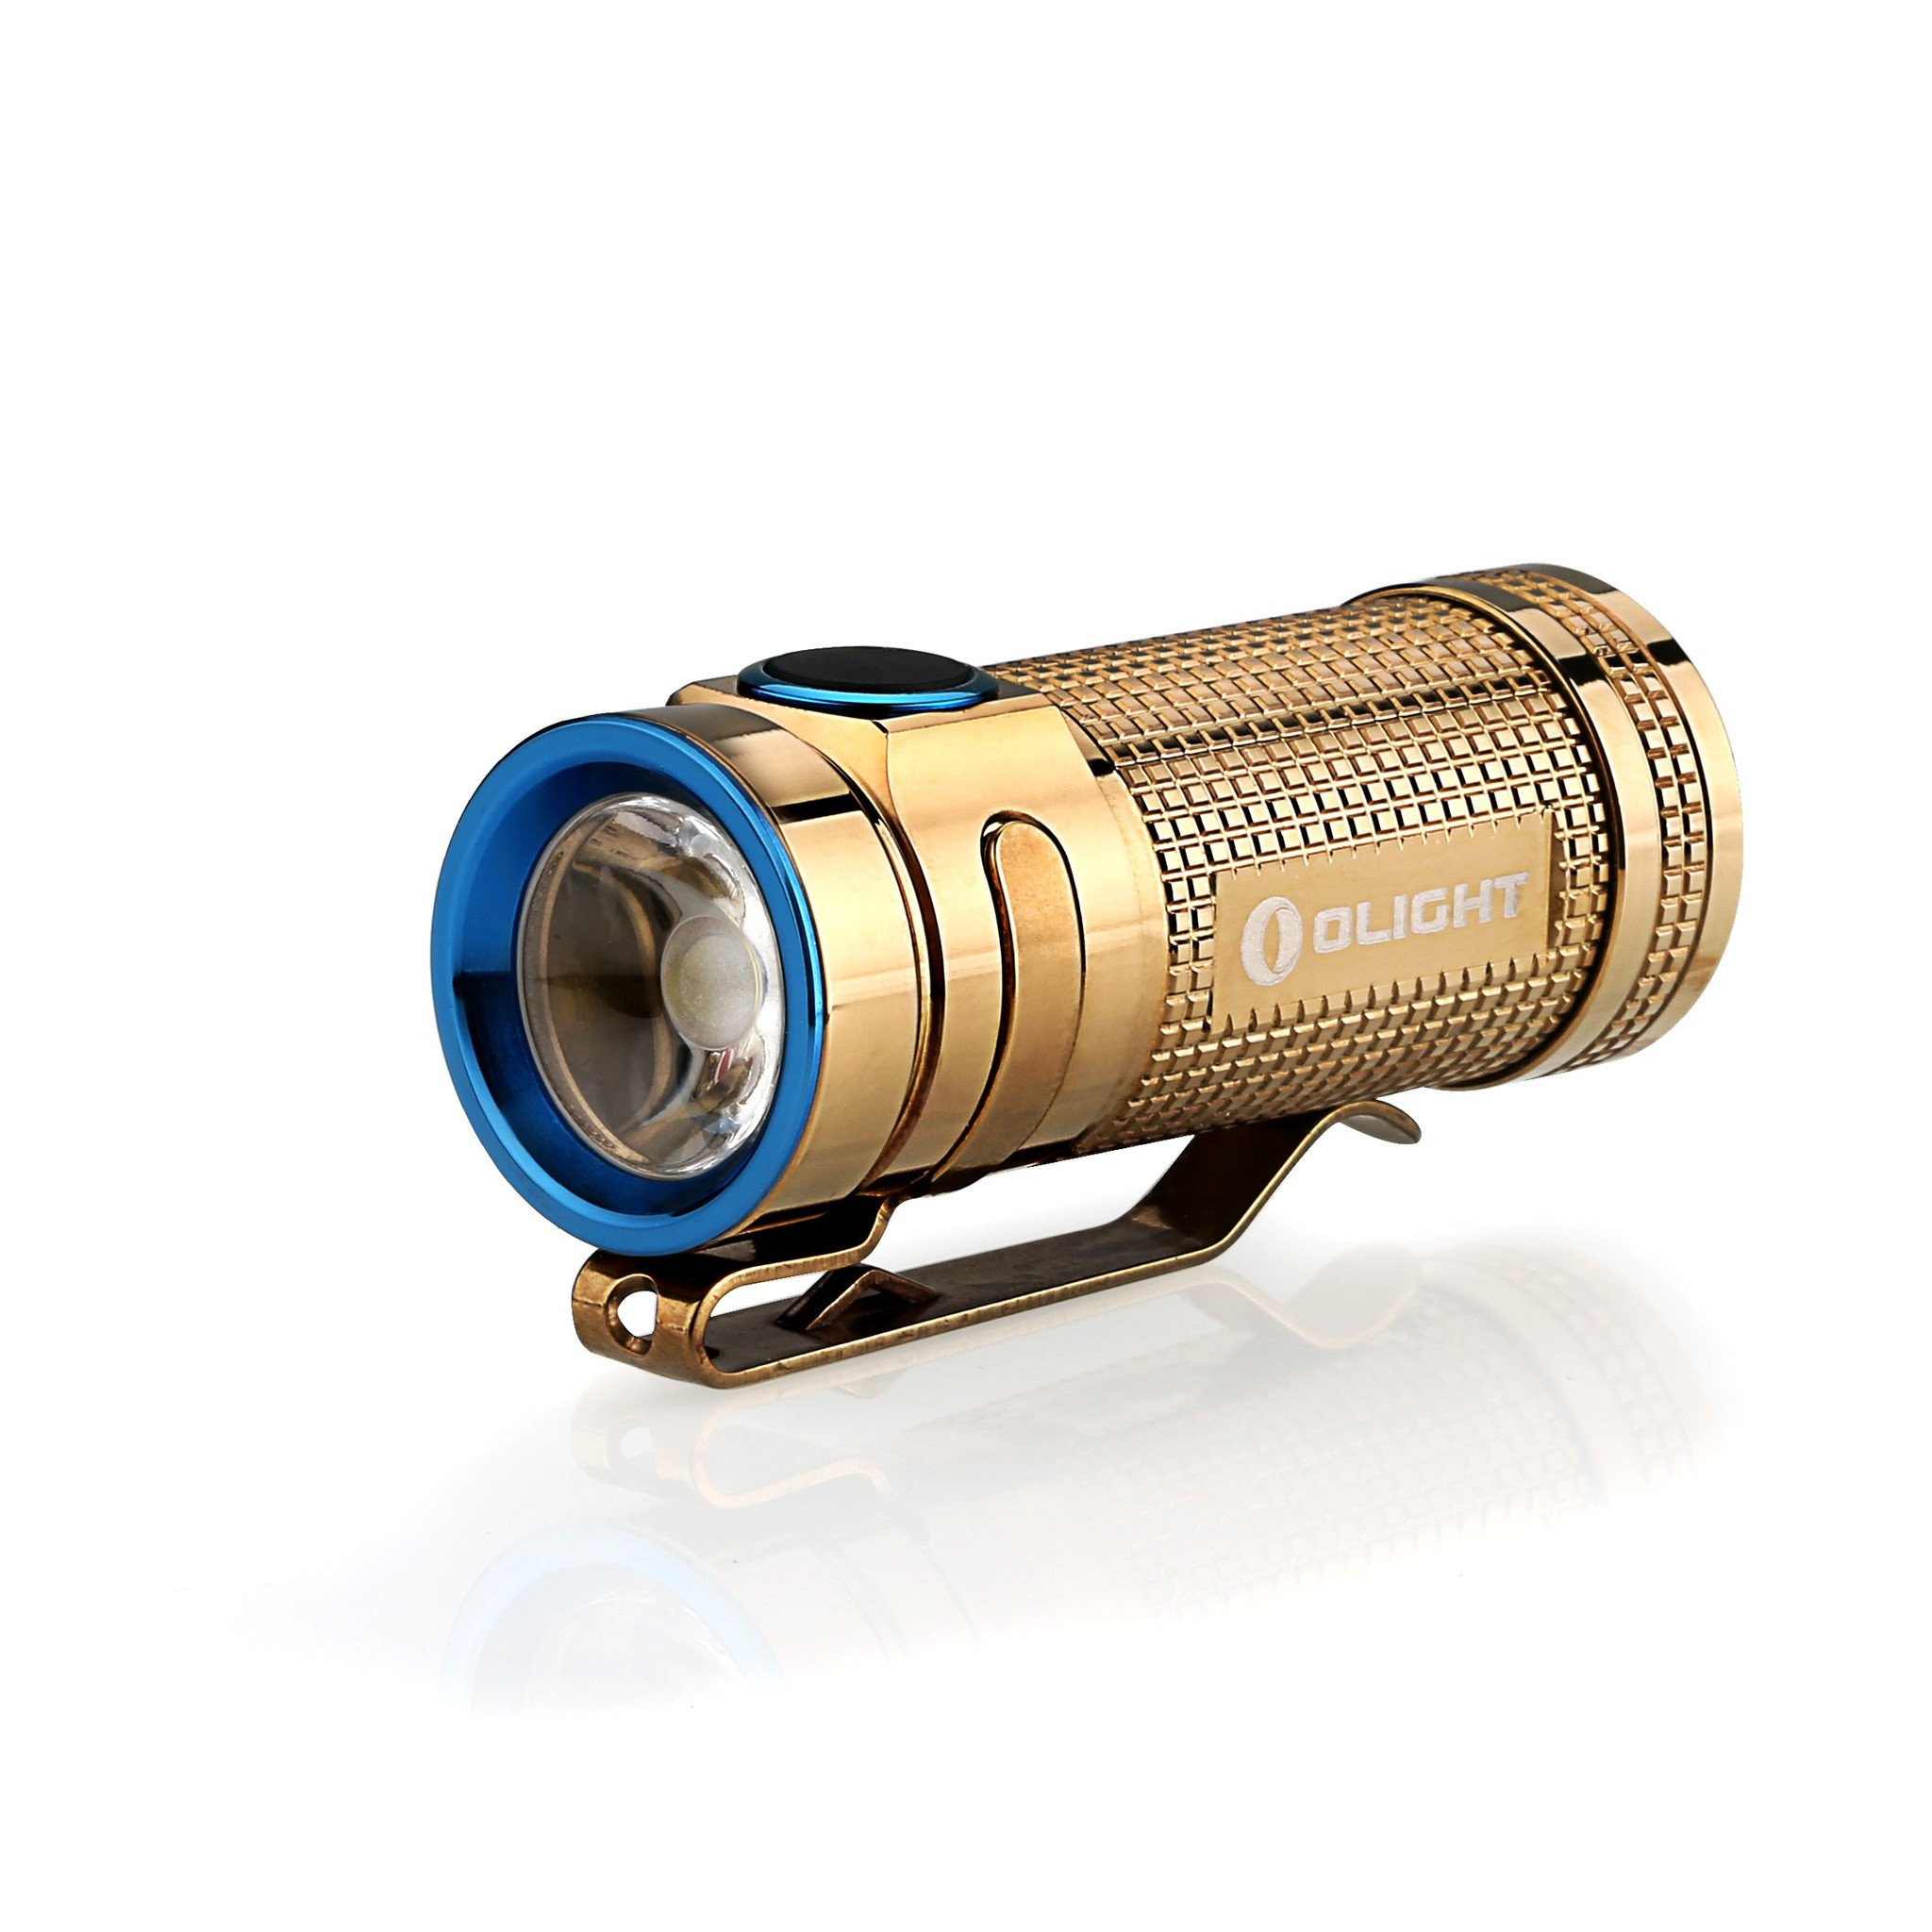 Olight S Mini Baton CU (Rose Gold) 1 x (R)CR123 550 Lumen CREE XM-L2 LED Flashlight